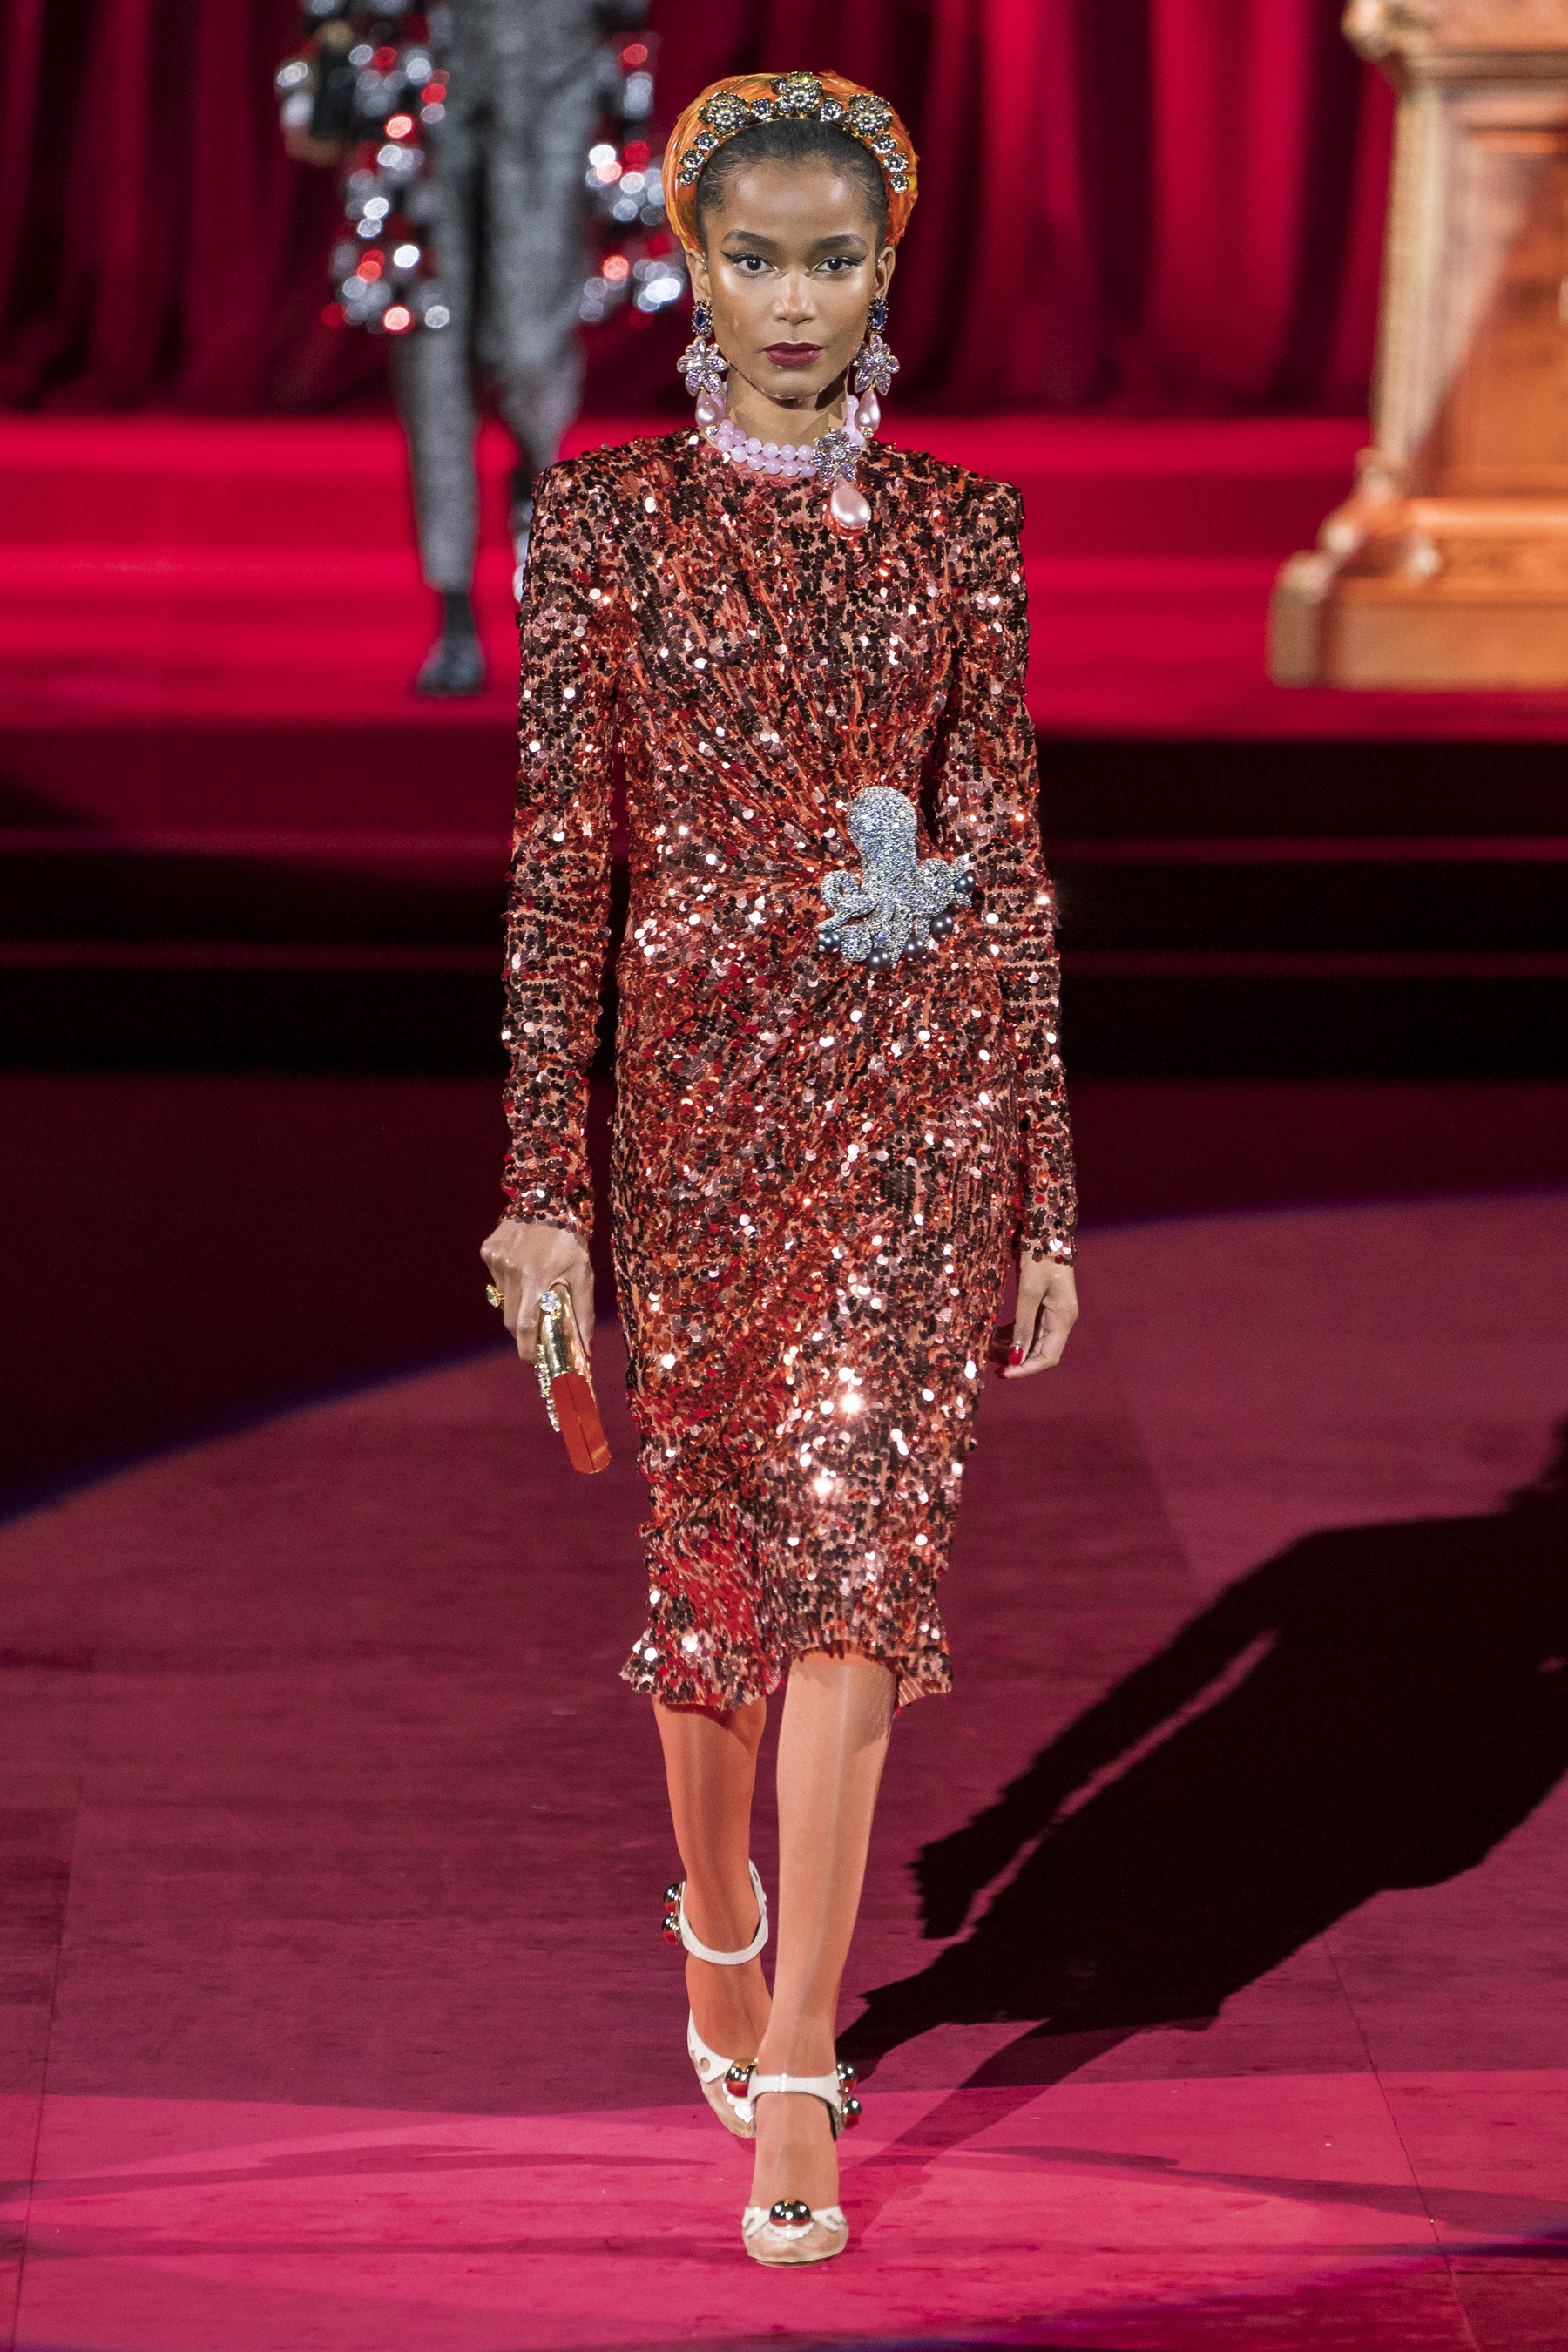 Dolce & Gabbana Fall 2019 Fashion Show